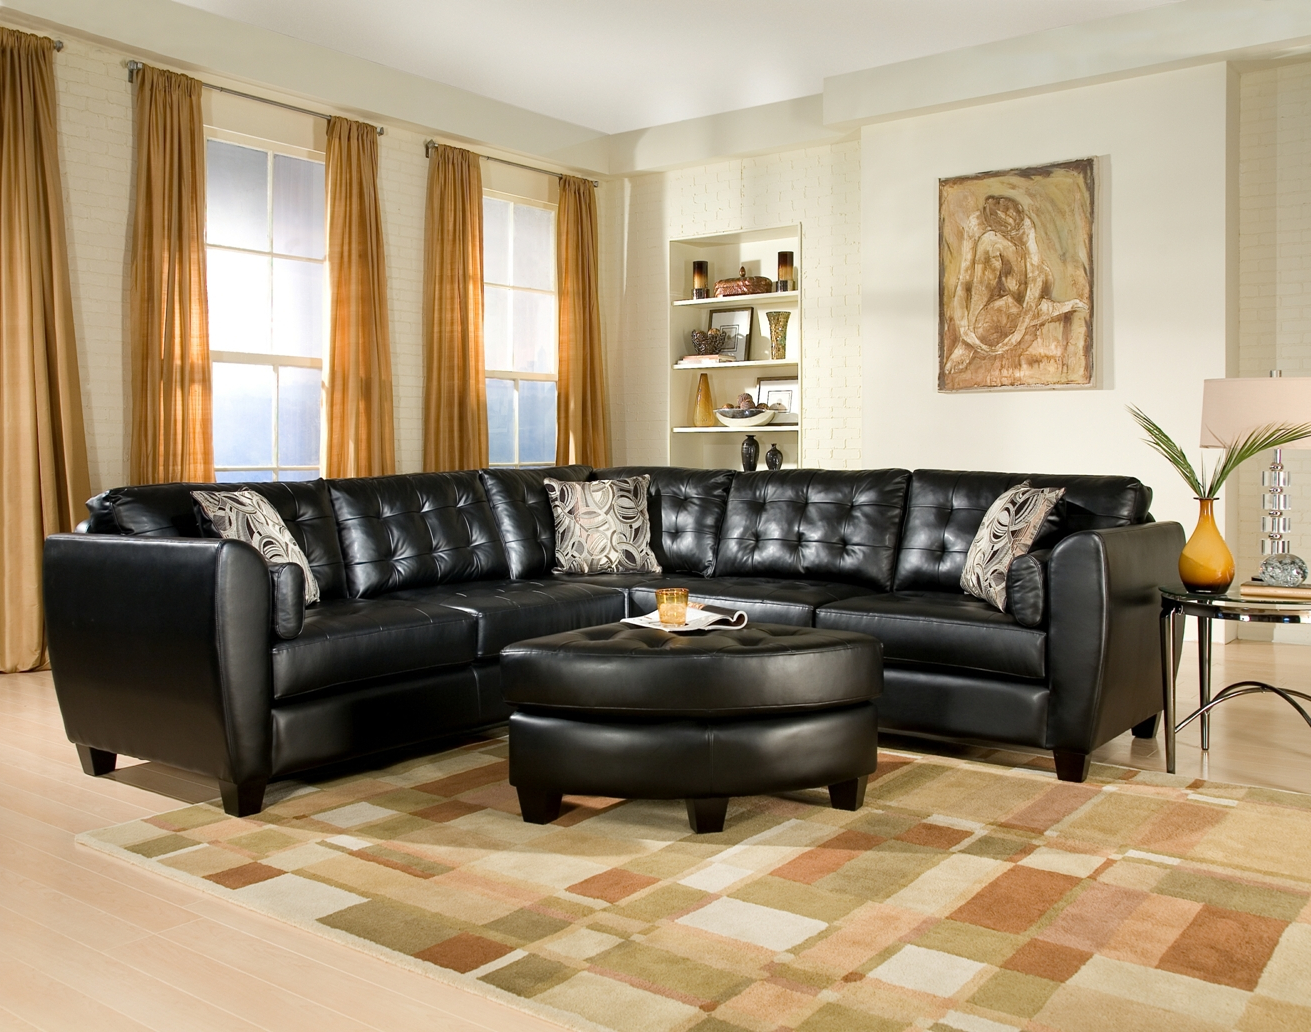 modern living room ideas decorating with black leather tufted sectionals sofa sets